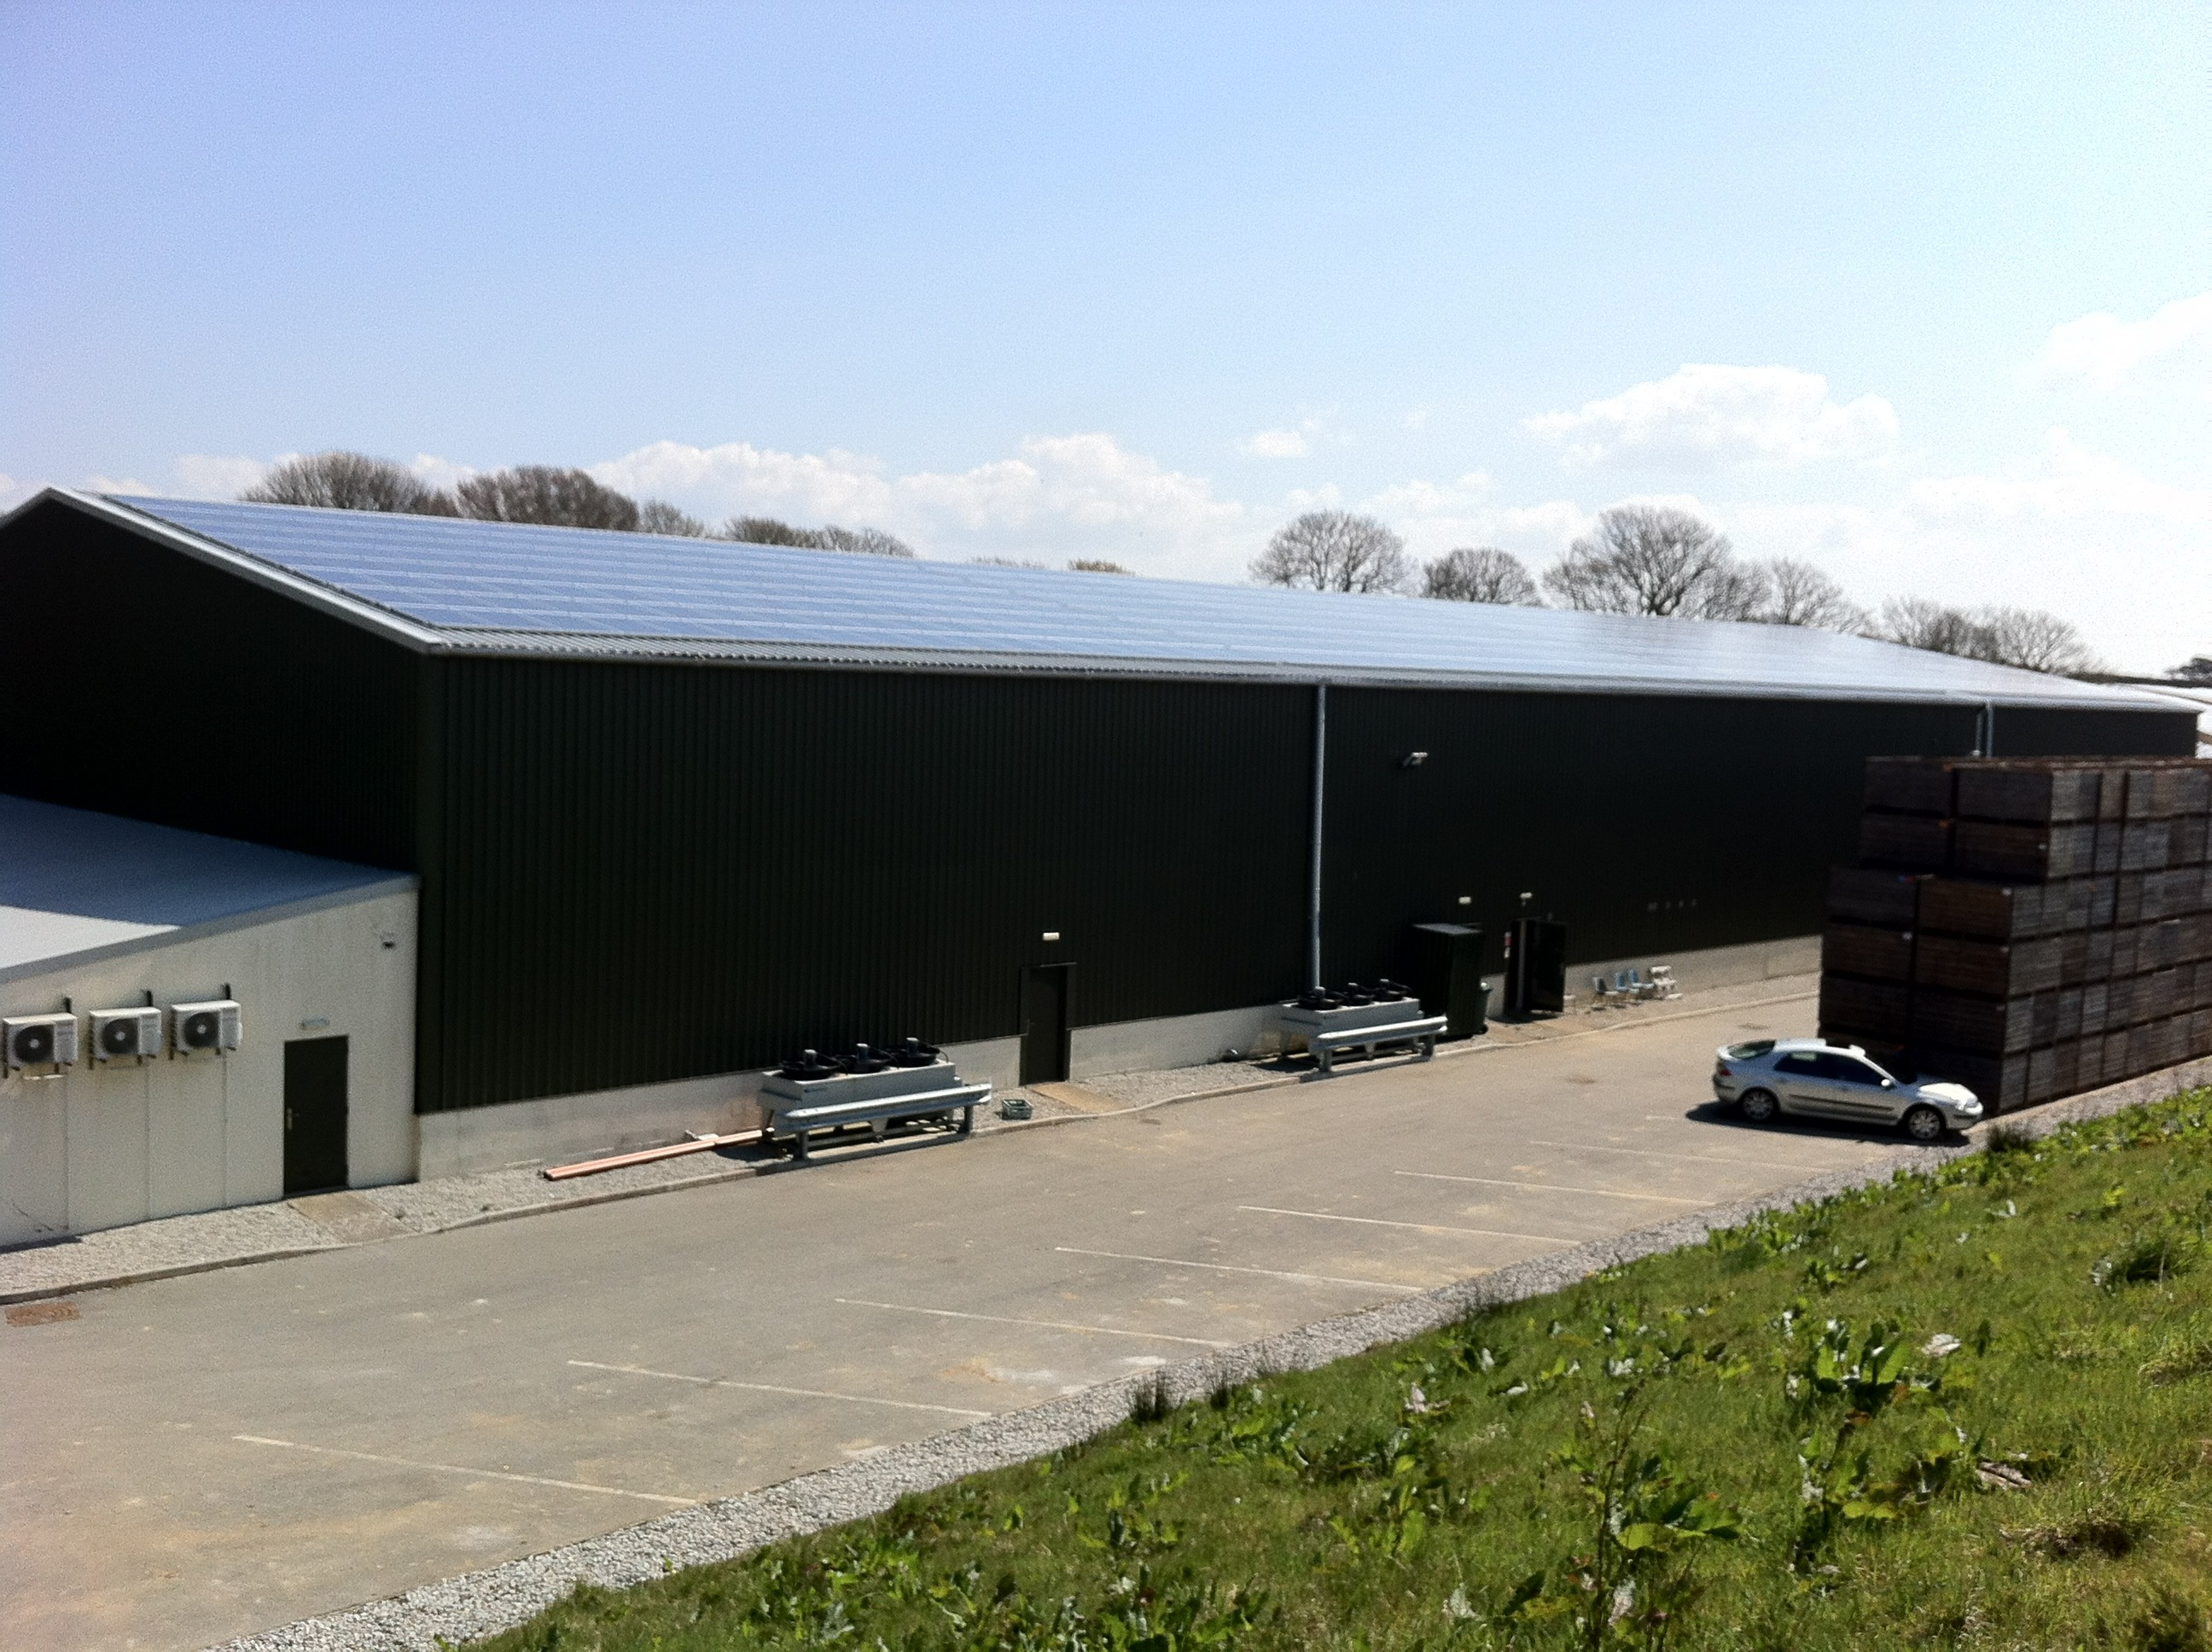 Cornwall solar side view